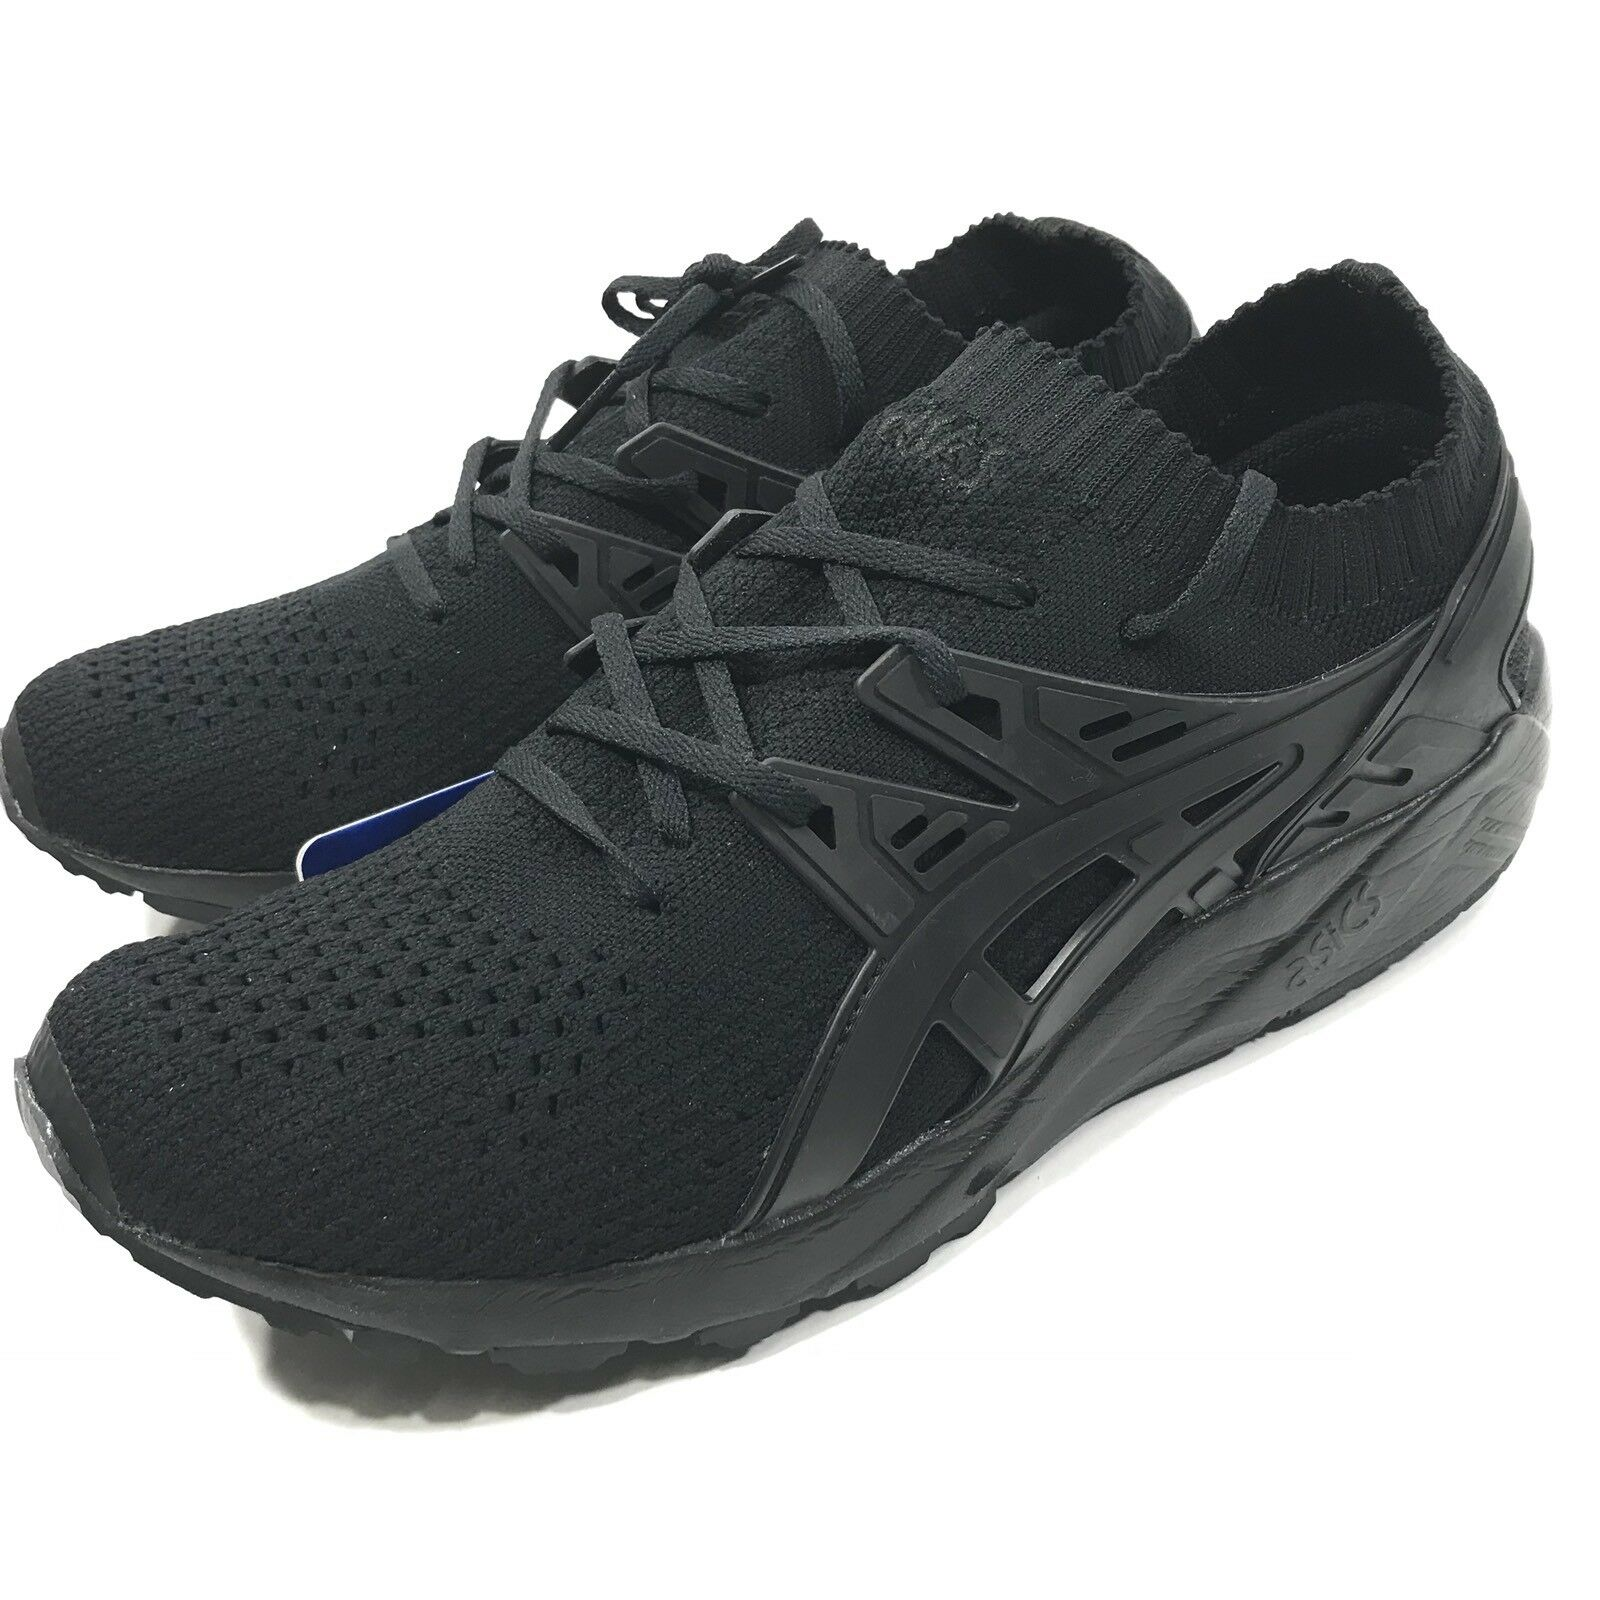 Asics Mens Gel Kayano 8 Trainer Knit Triple Black 8 Kayano Y0109 5f3b49